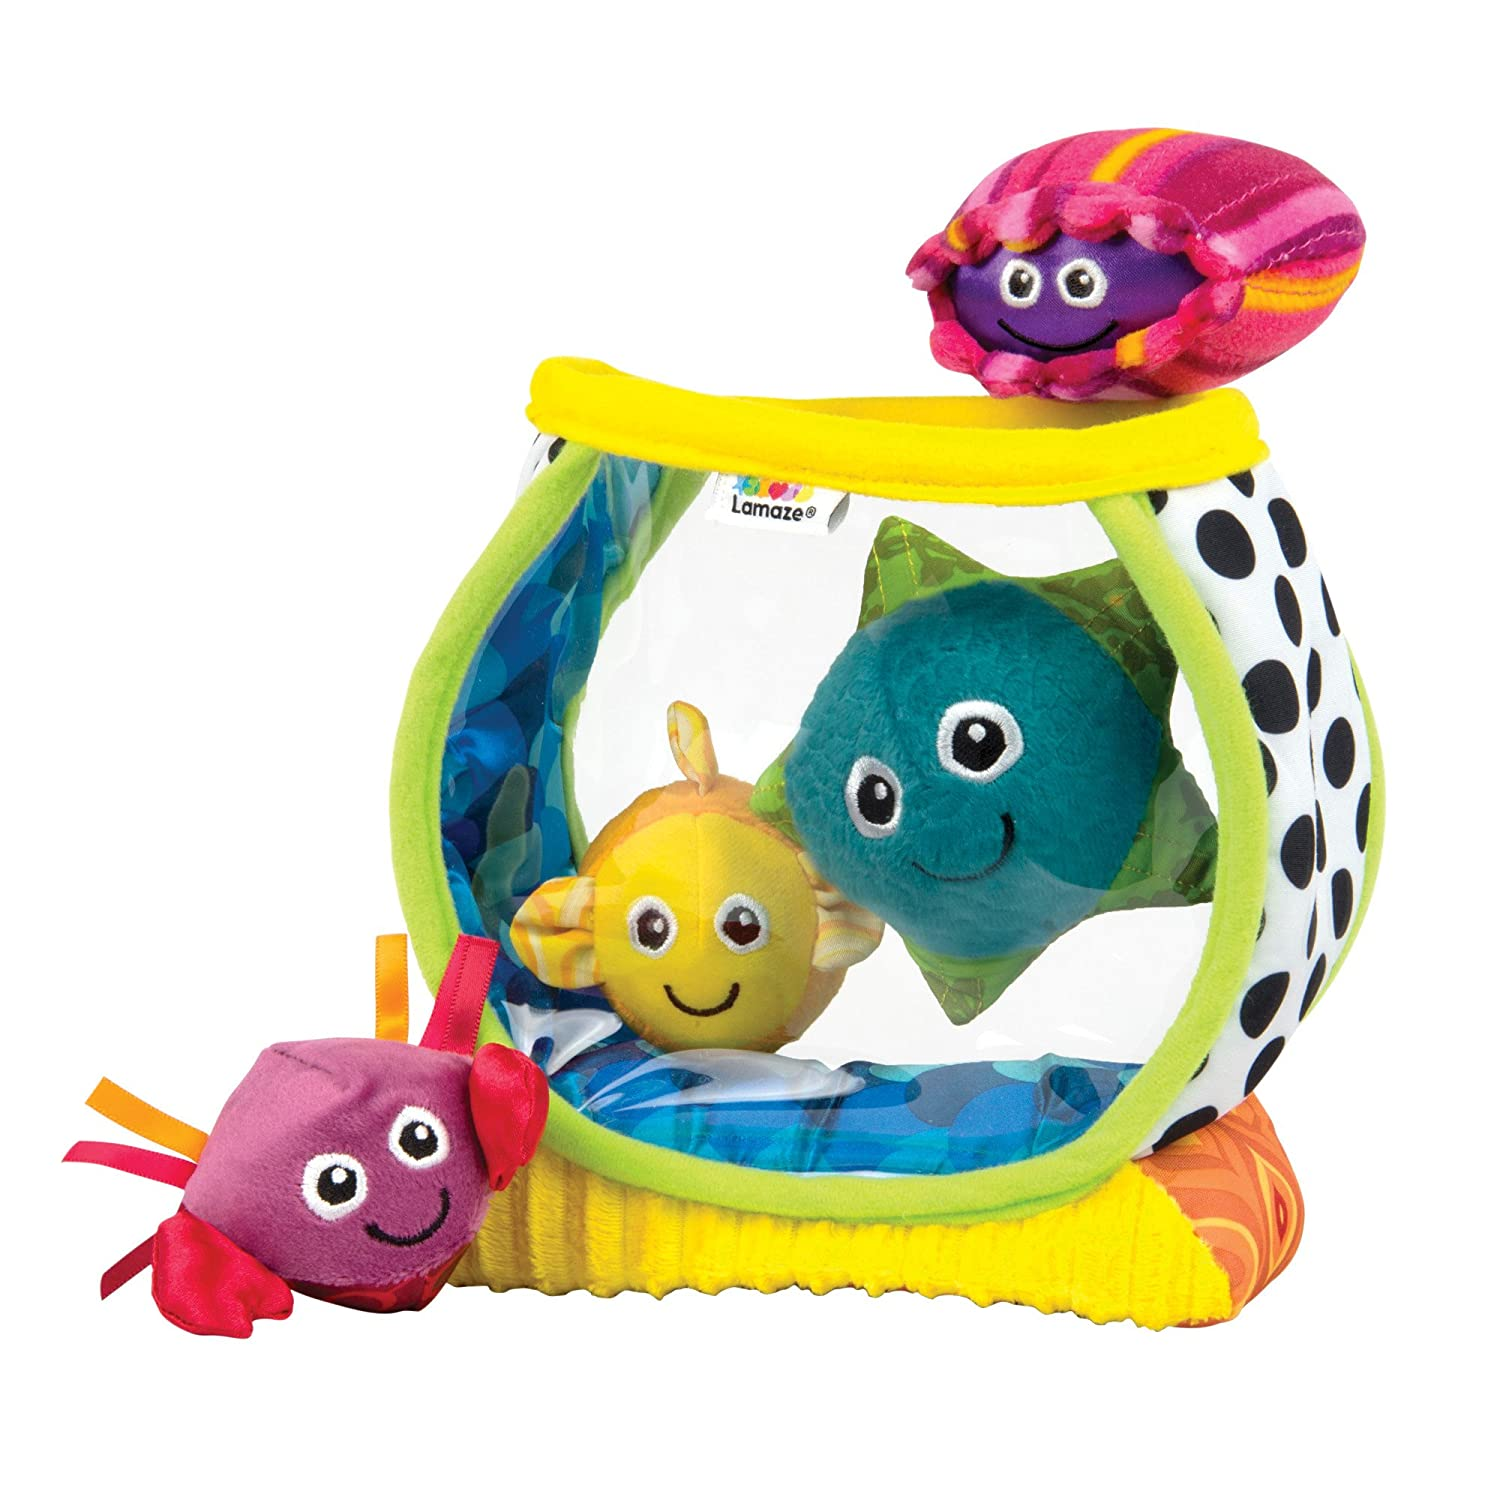 Lamaze mon premier fishbowl Amazon Baby